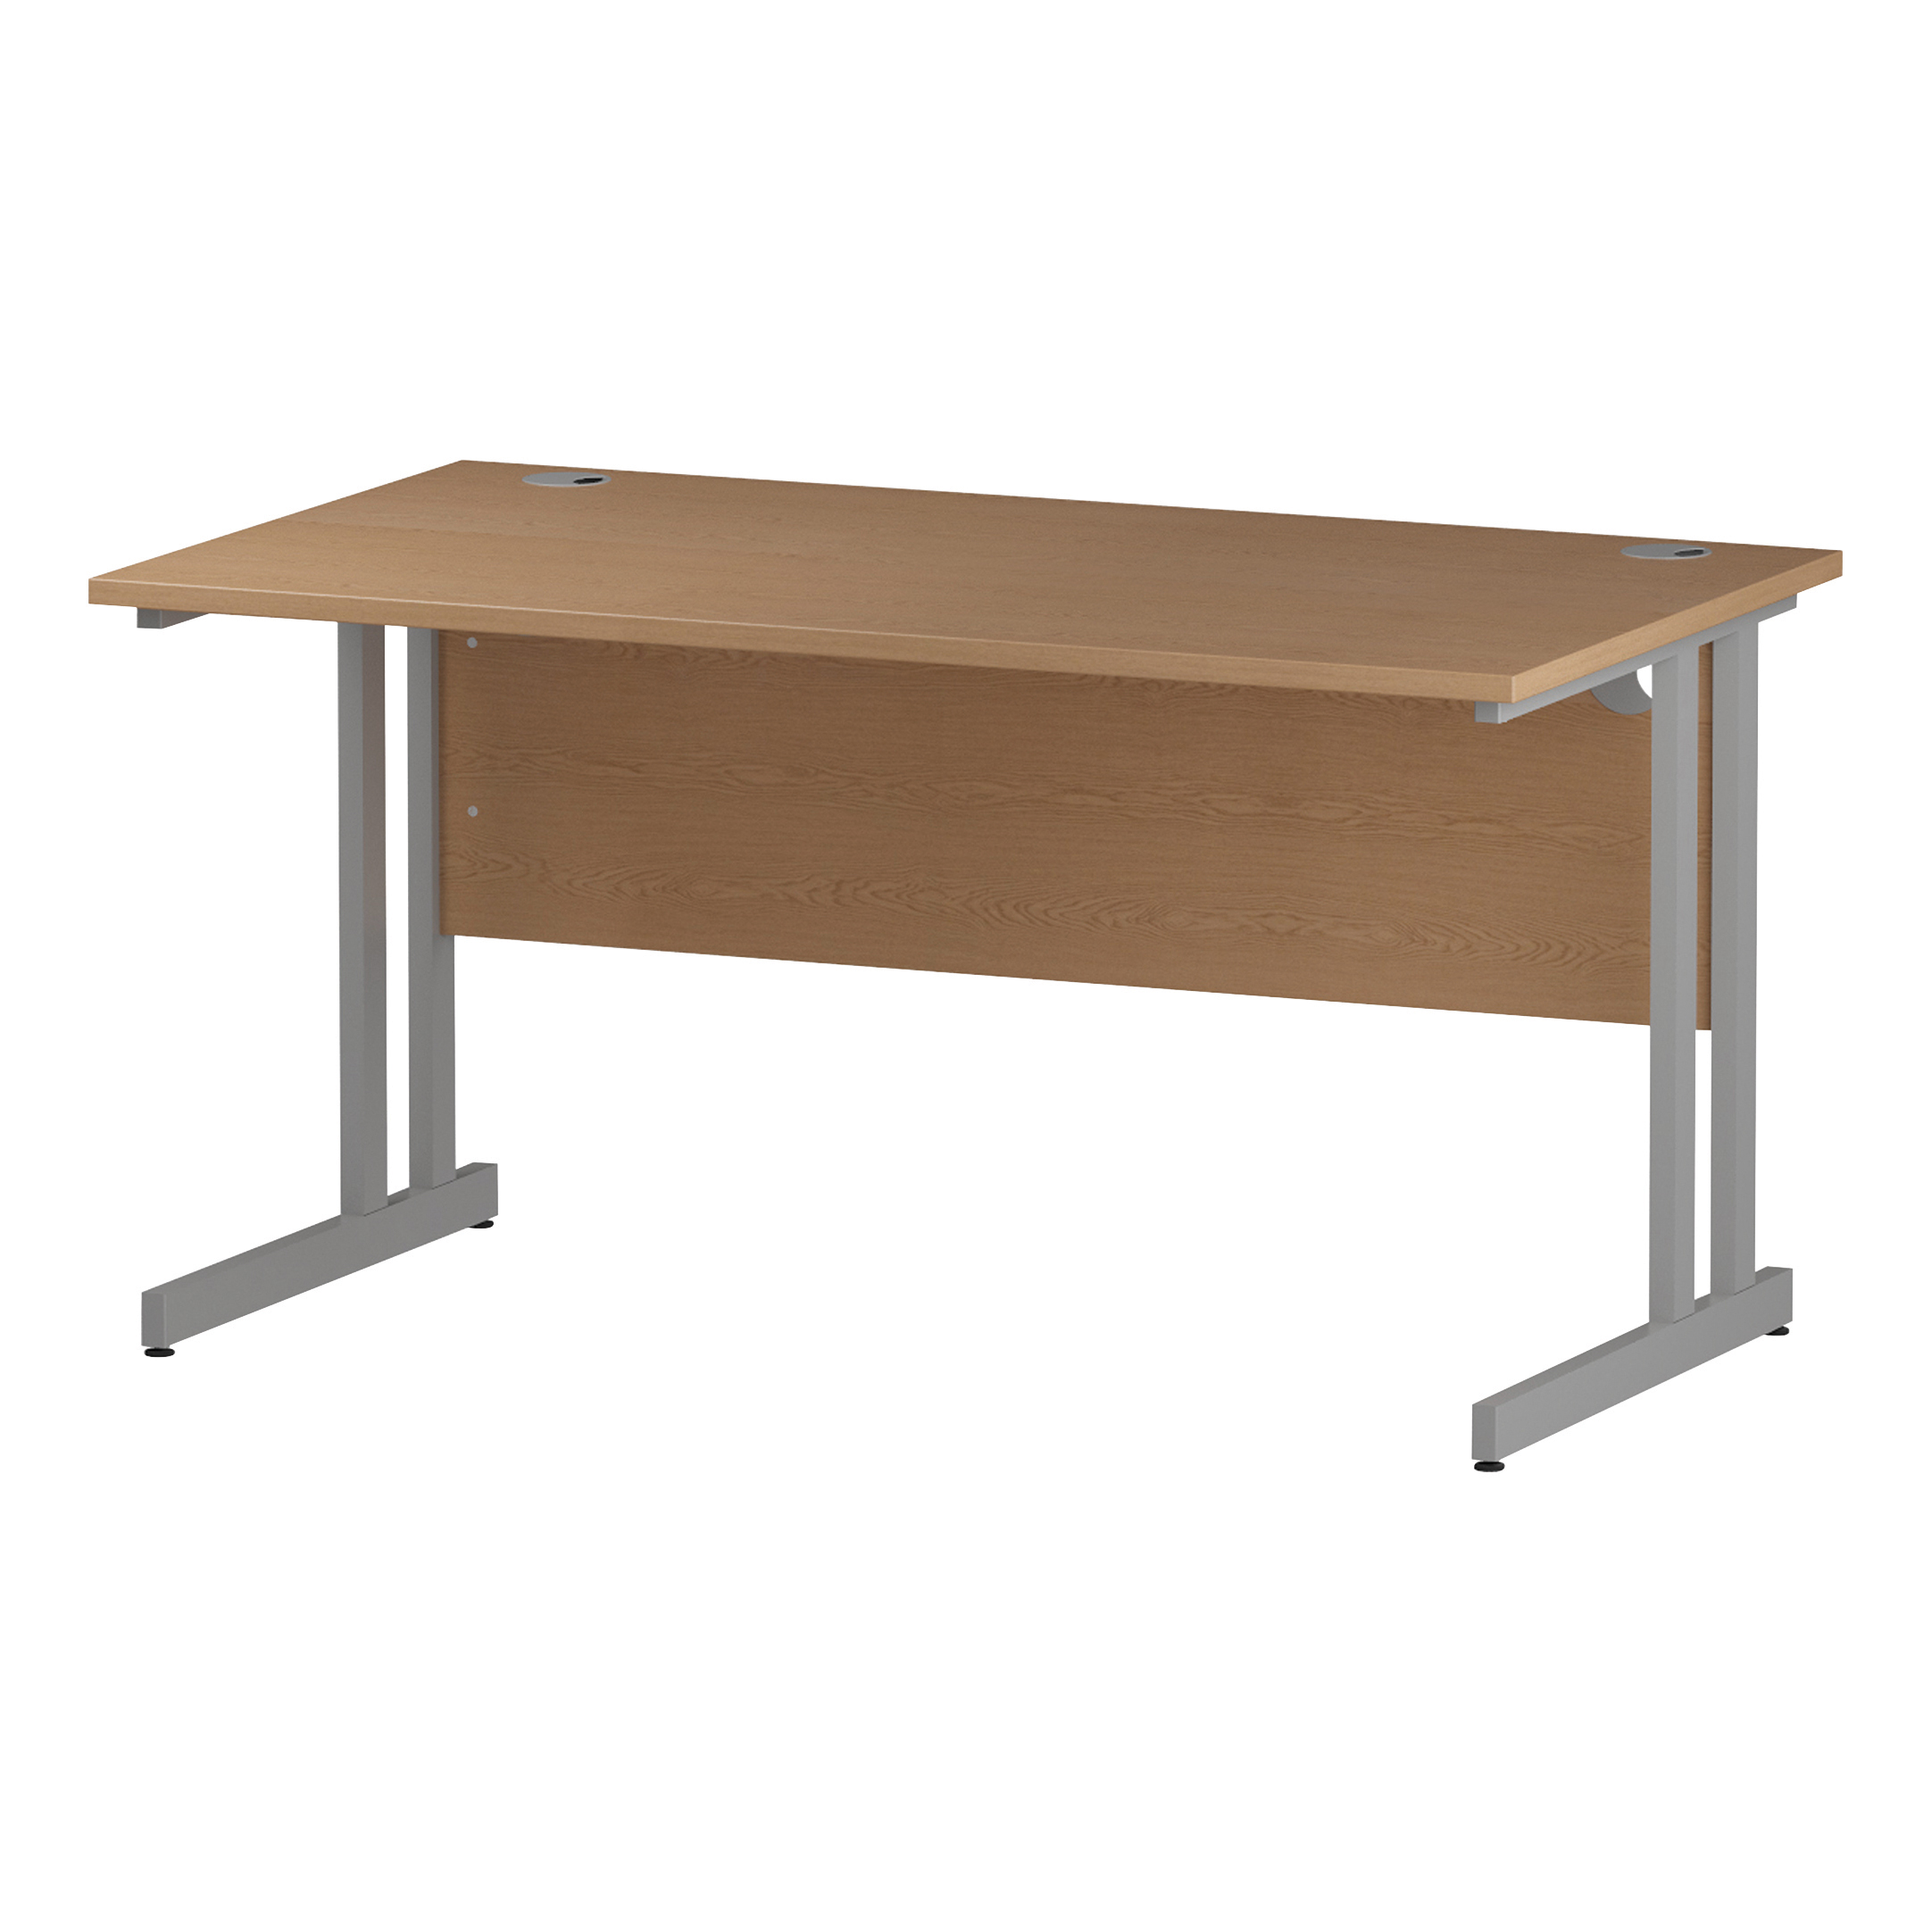 Trexus Rectangular Desk Silver Cantilever Leg 1400x800mm Oak Ref I000807